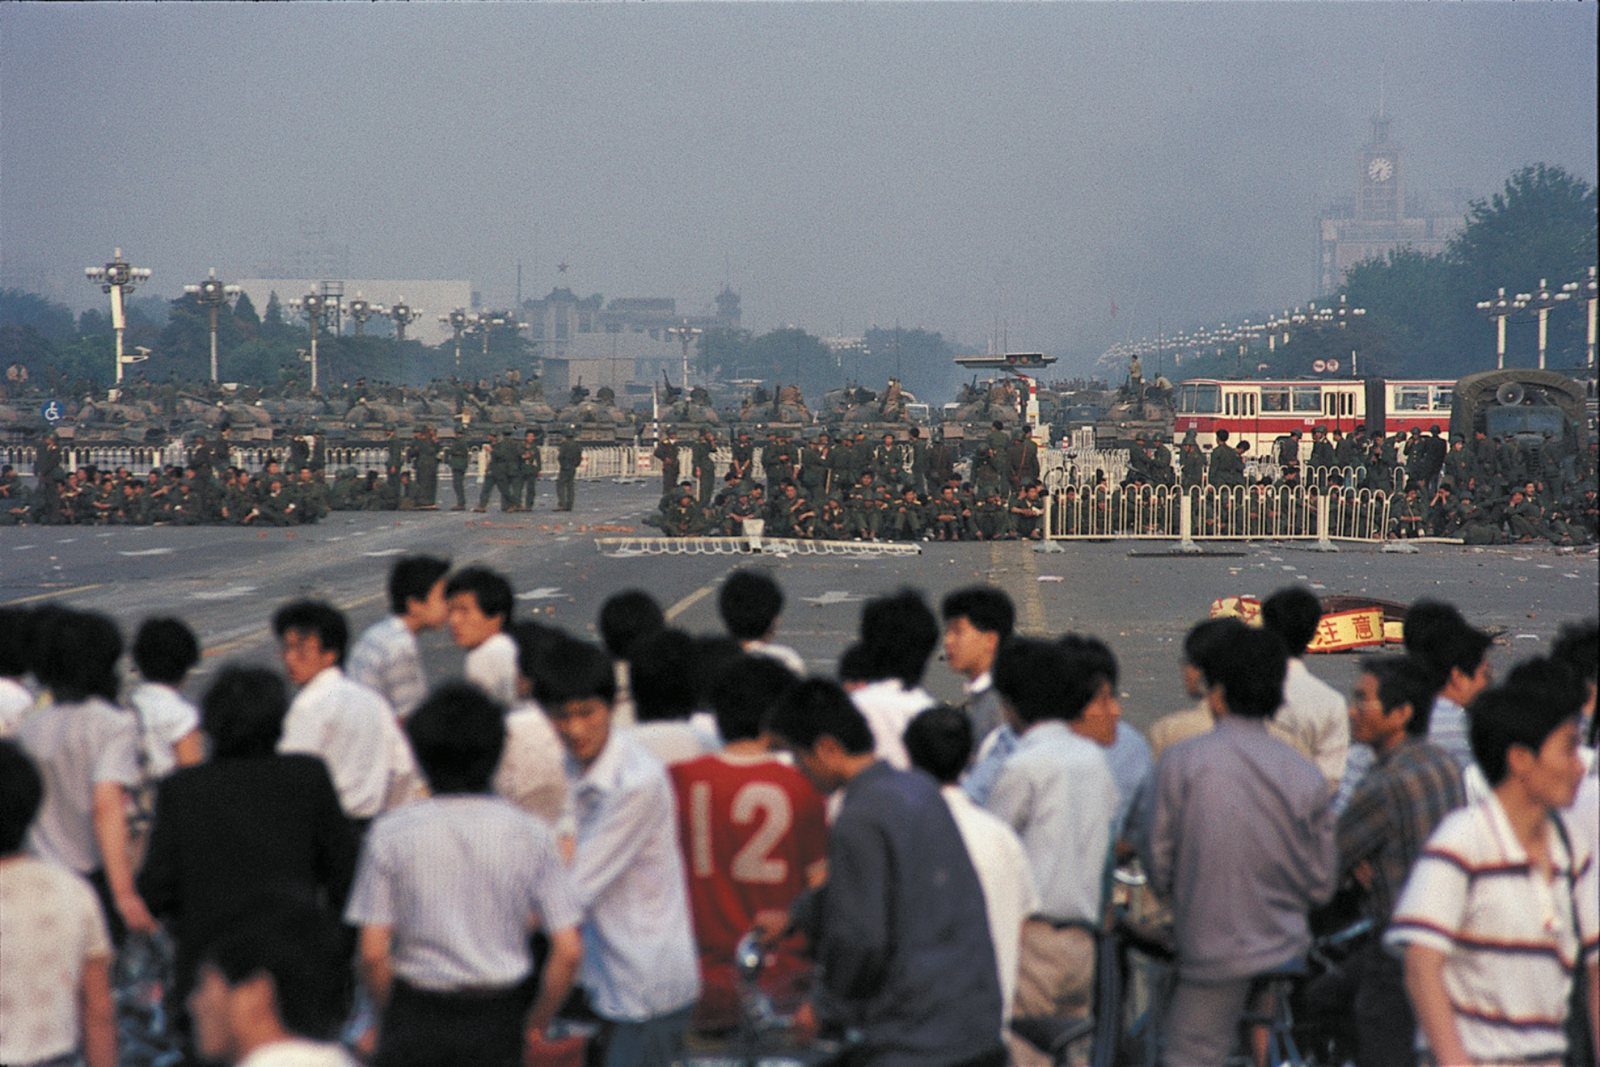 Demonstrators and troops during the Tiananmen Square protests, Beijing, June 1989